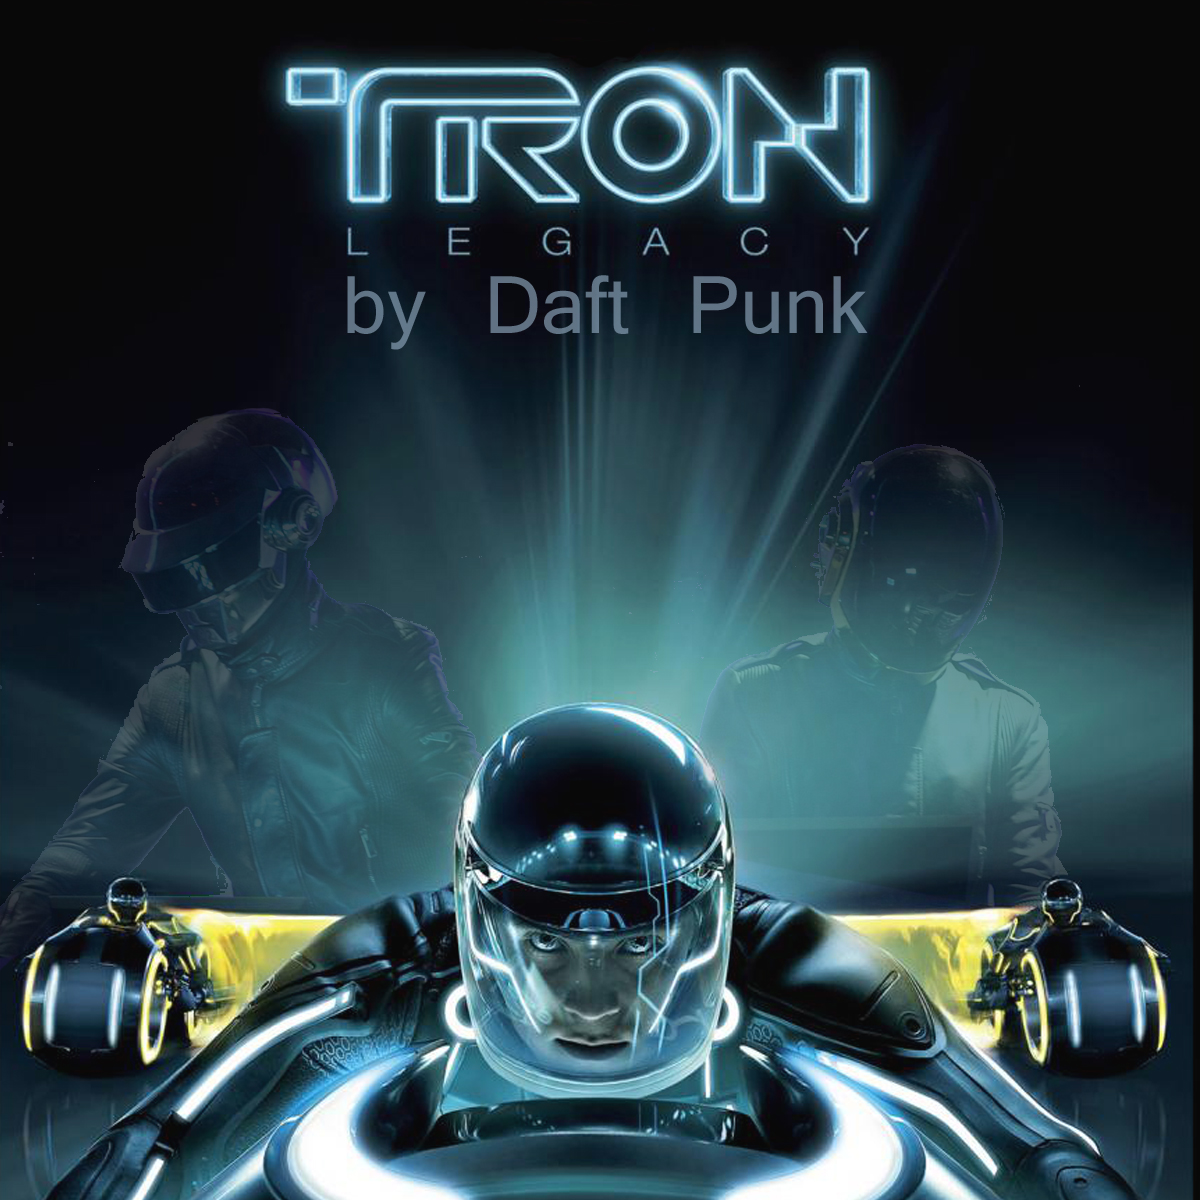 Daft Punk - Tron Legacy (Original Soundtrack)